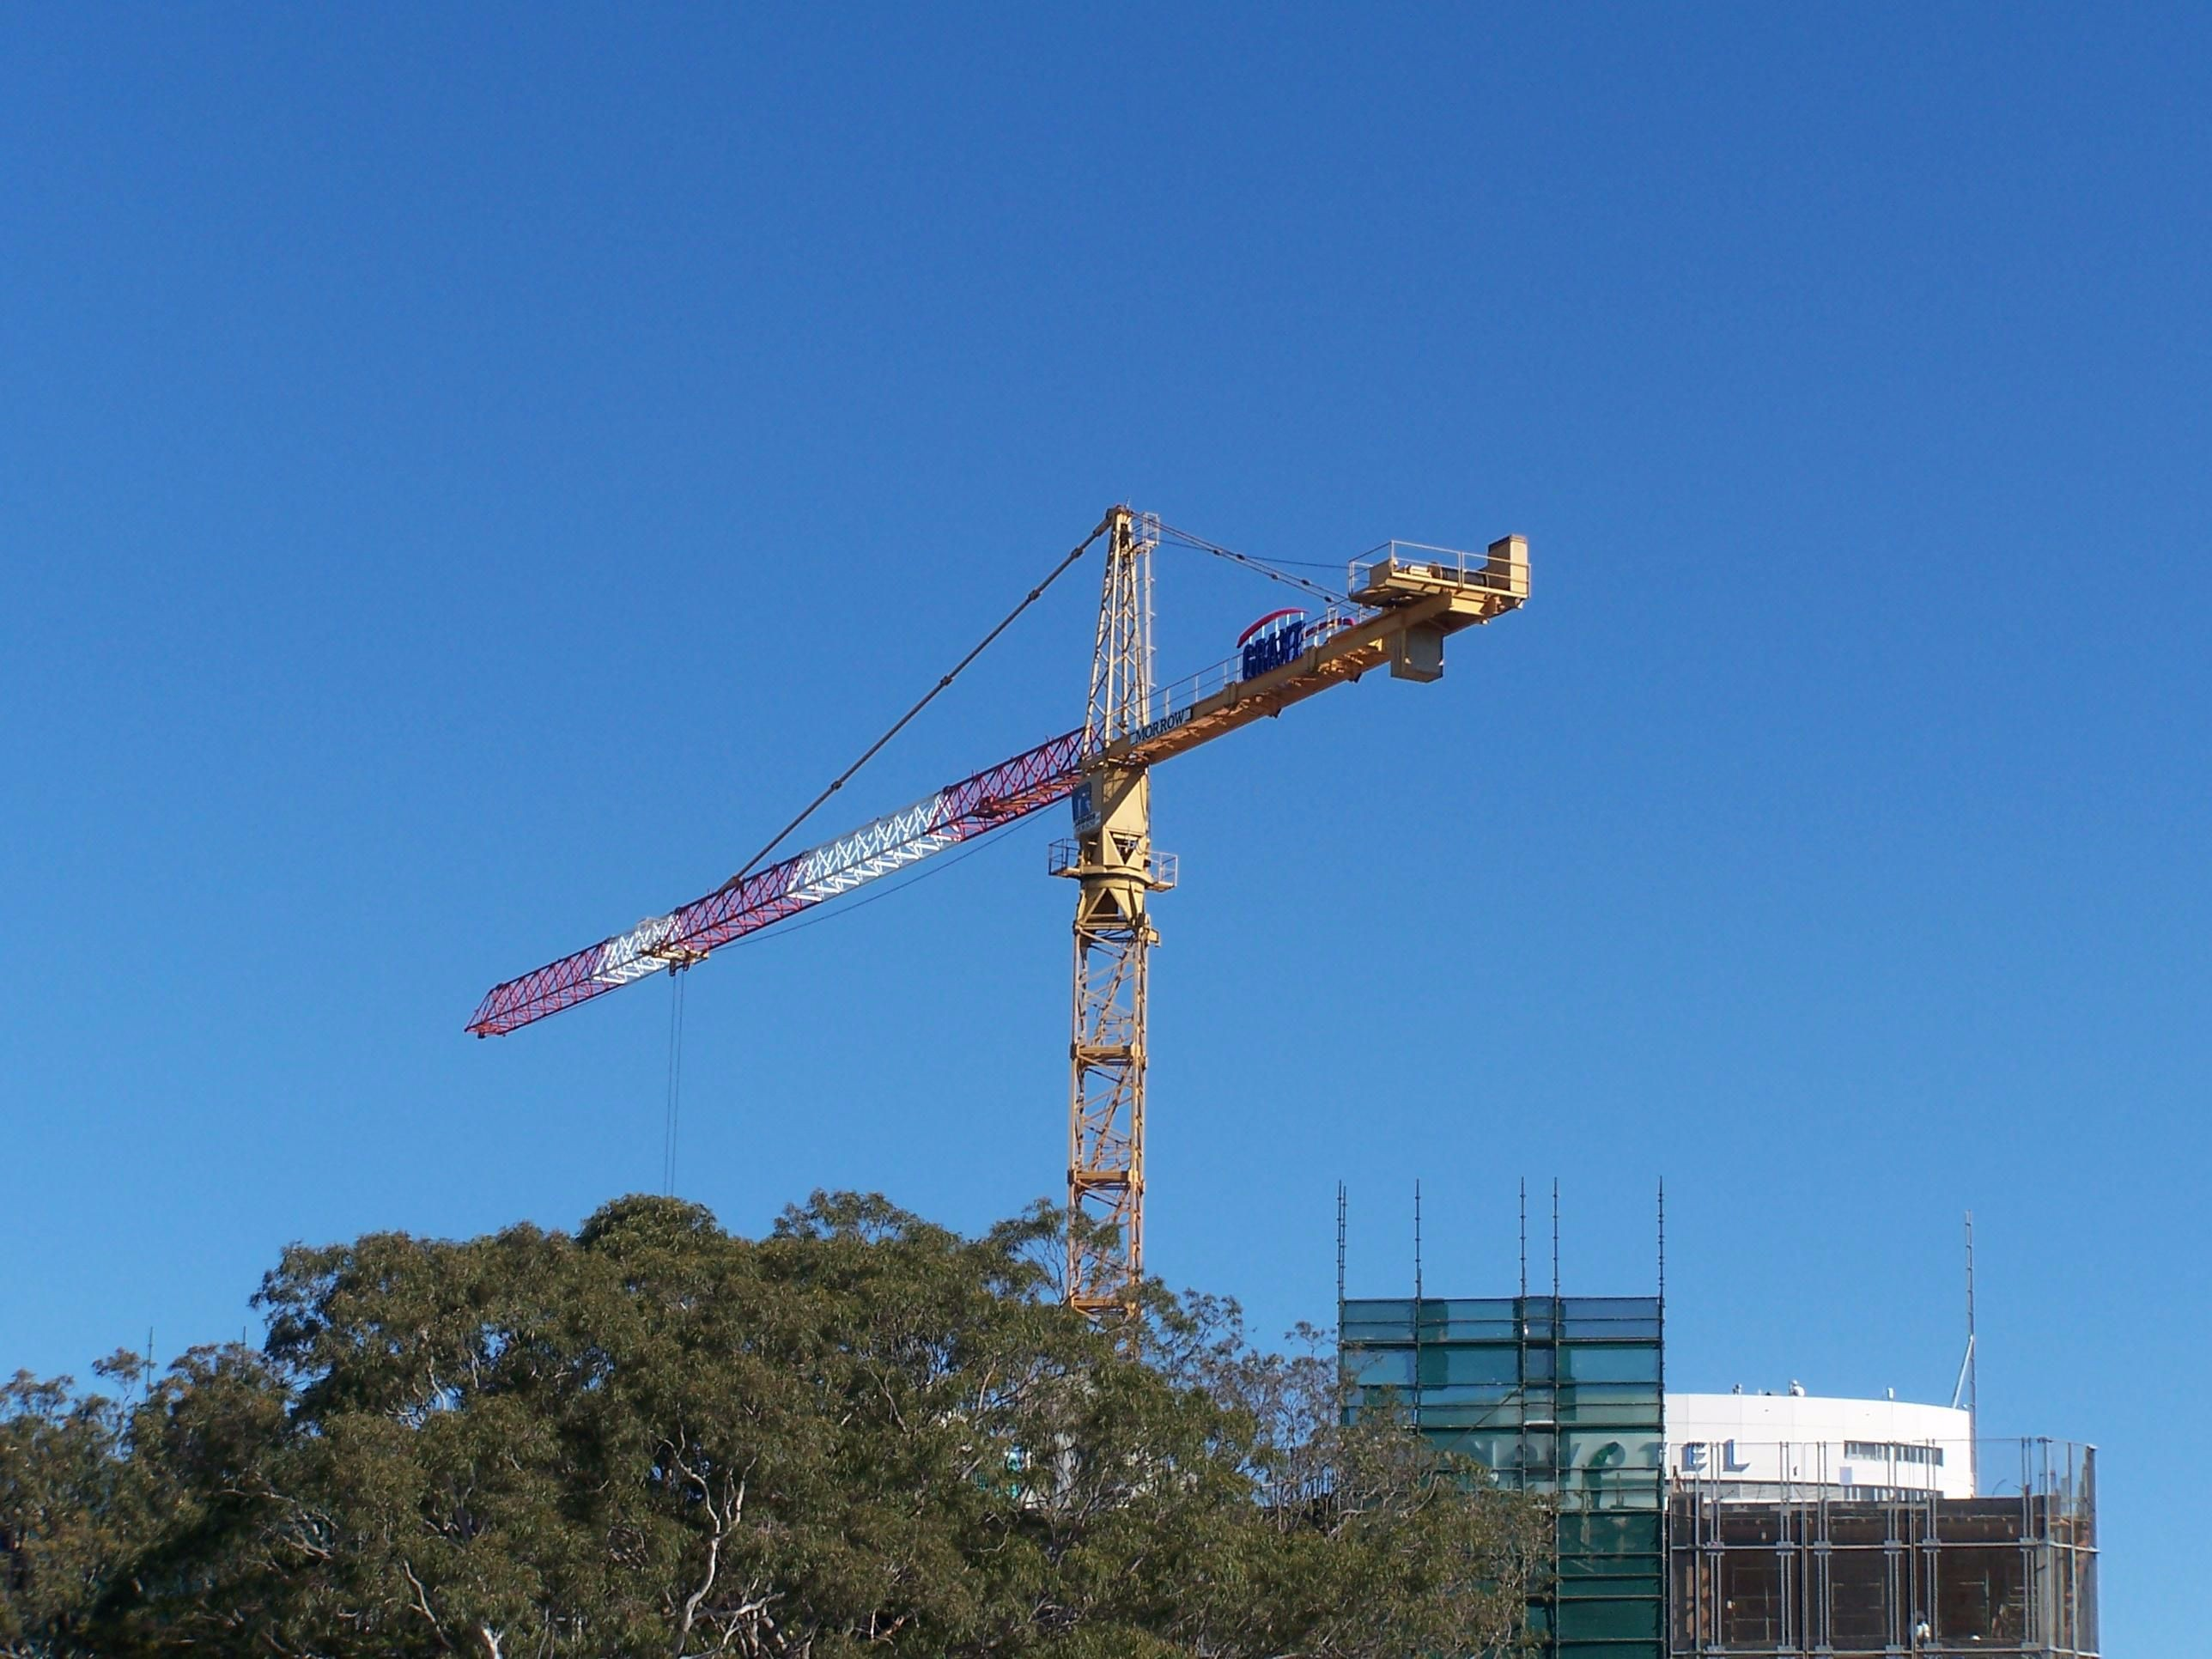 crane-in-construction